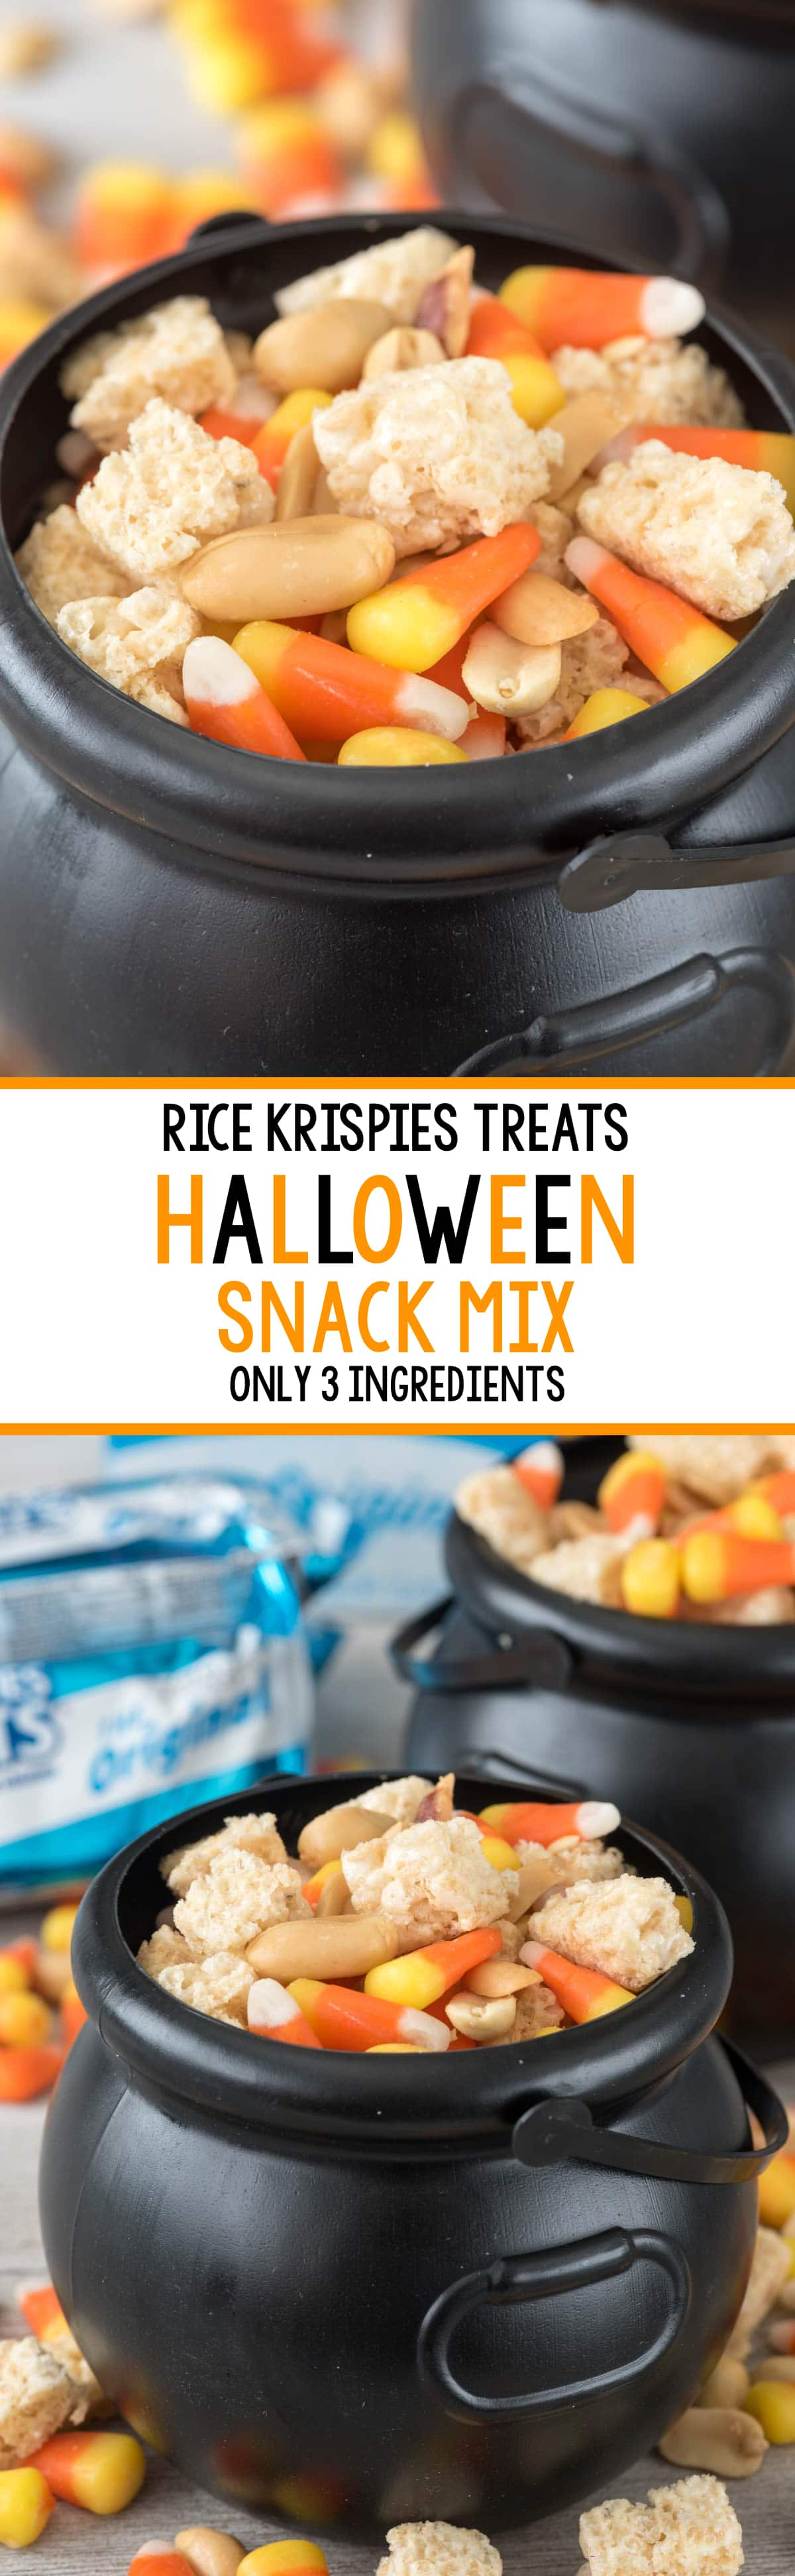 Halloween Snack Mix Crazy For Crust Kripiss Medan Karamel This Easy Has Only 3 Ingredients The Crunchy Sweetness Tastes Like A